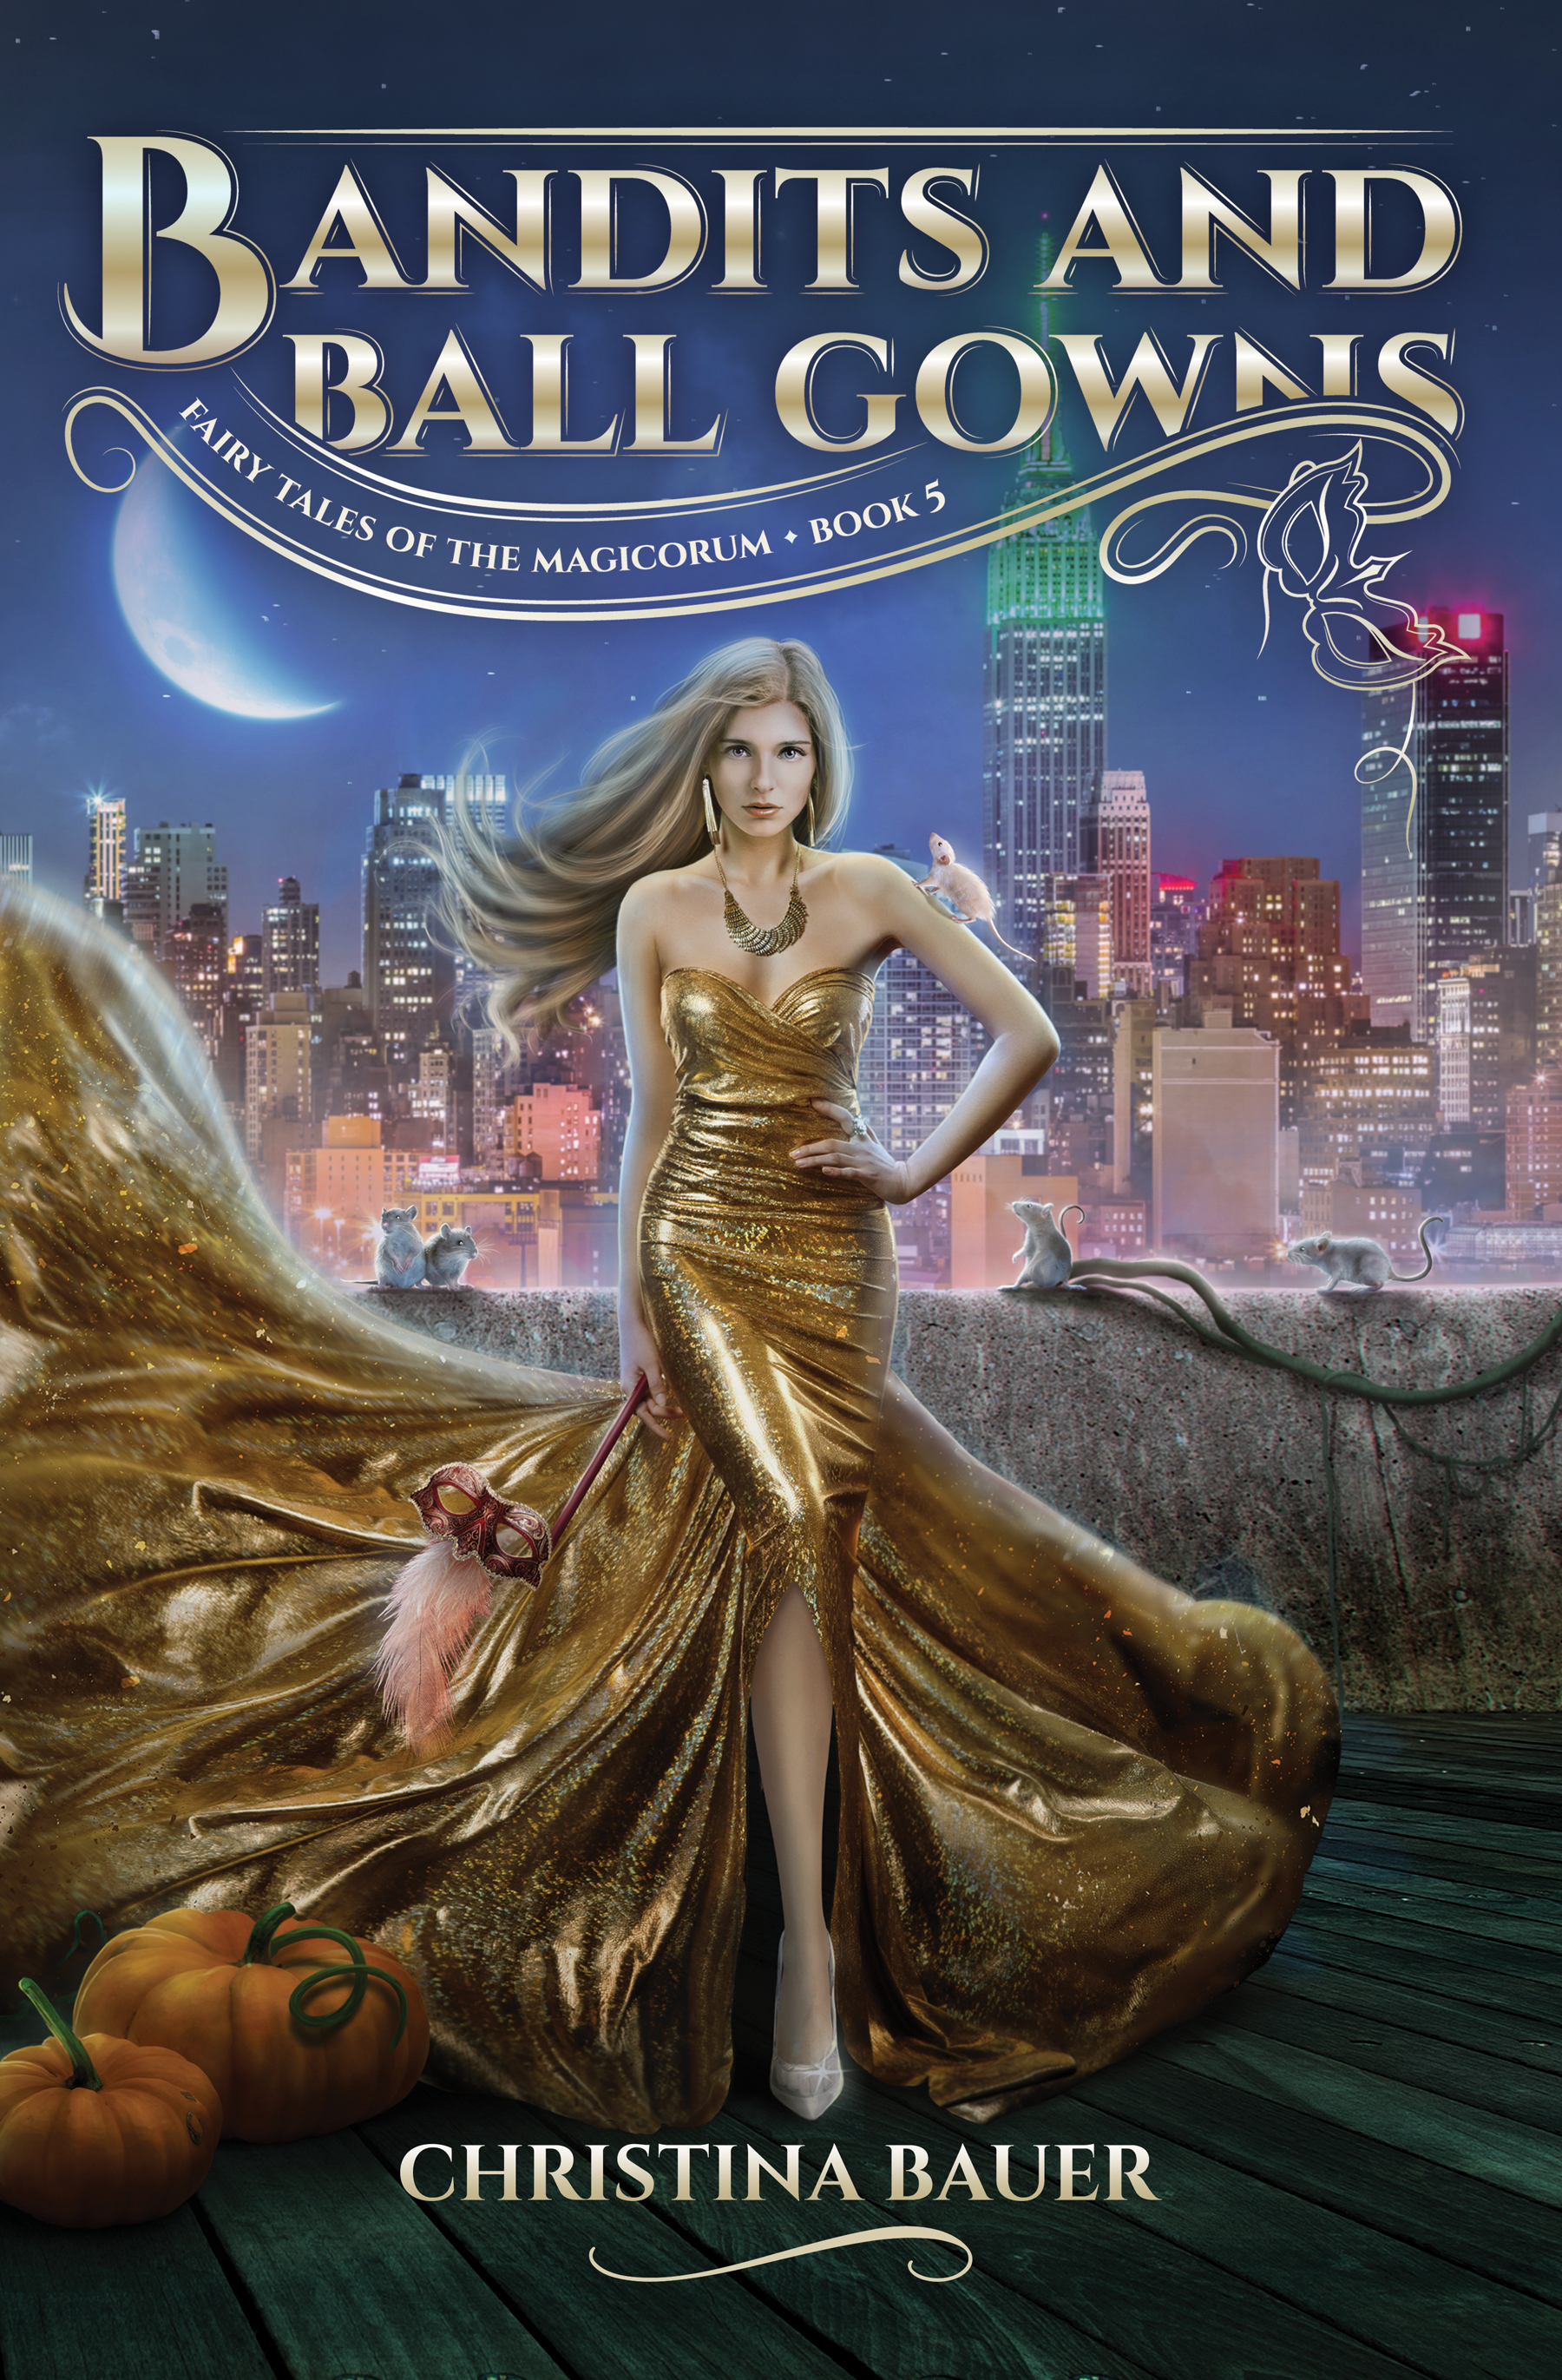 BANDITS AND BALLGOWNS (Book 5)